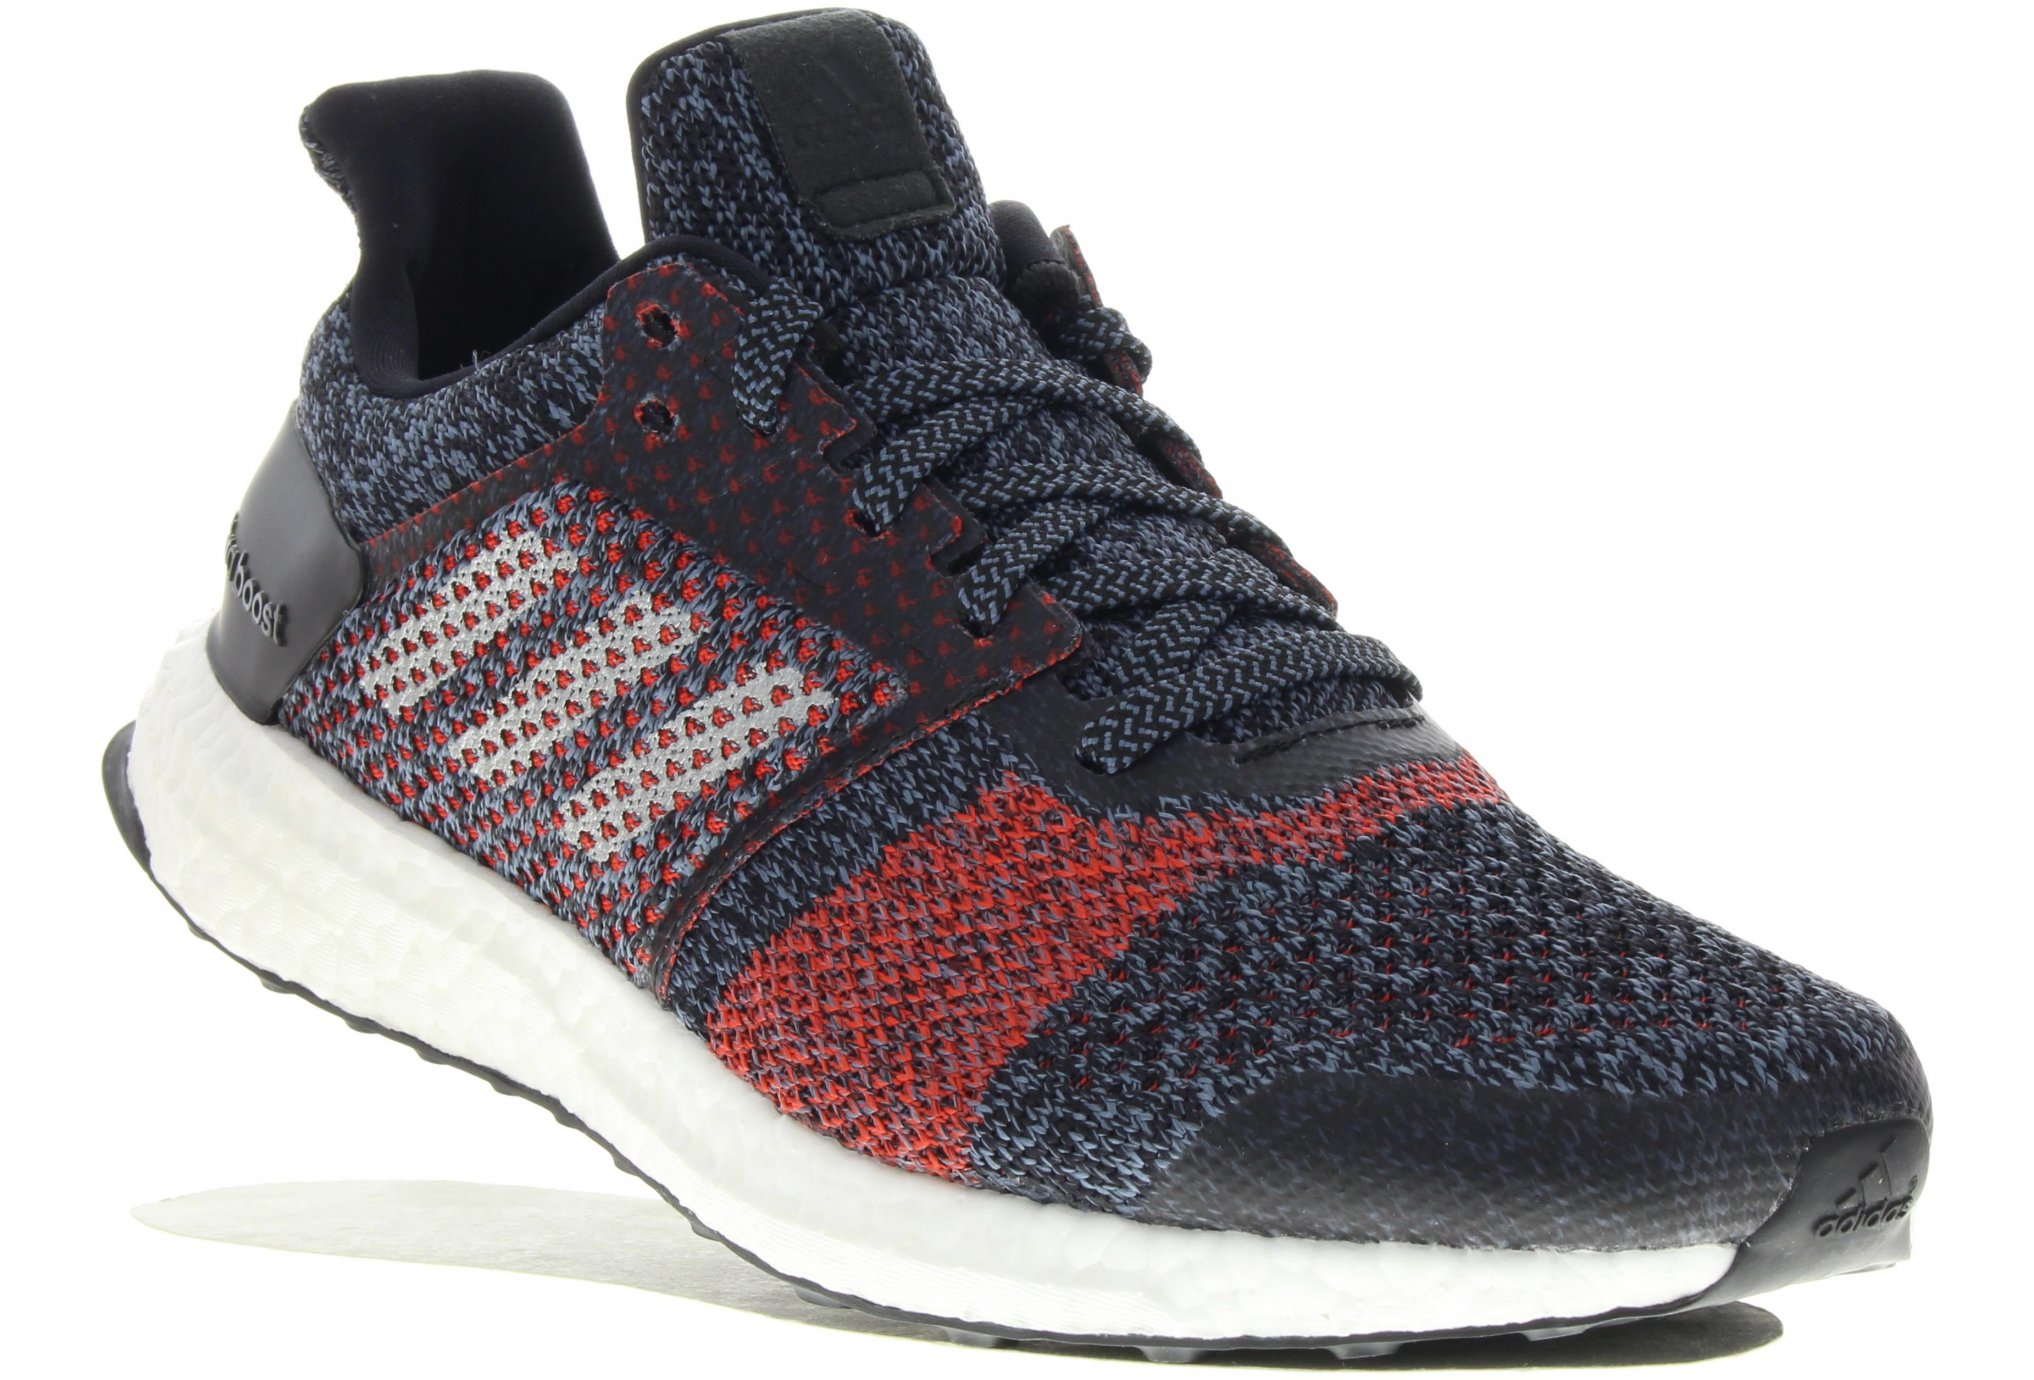 Adidas Ultra boost st m chaussures homme